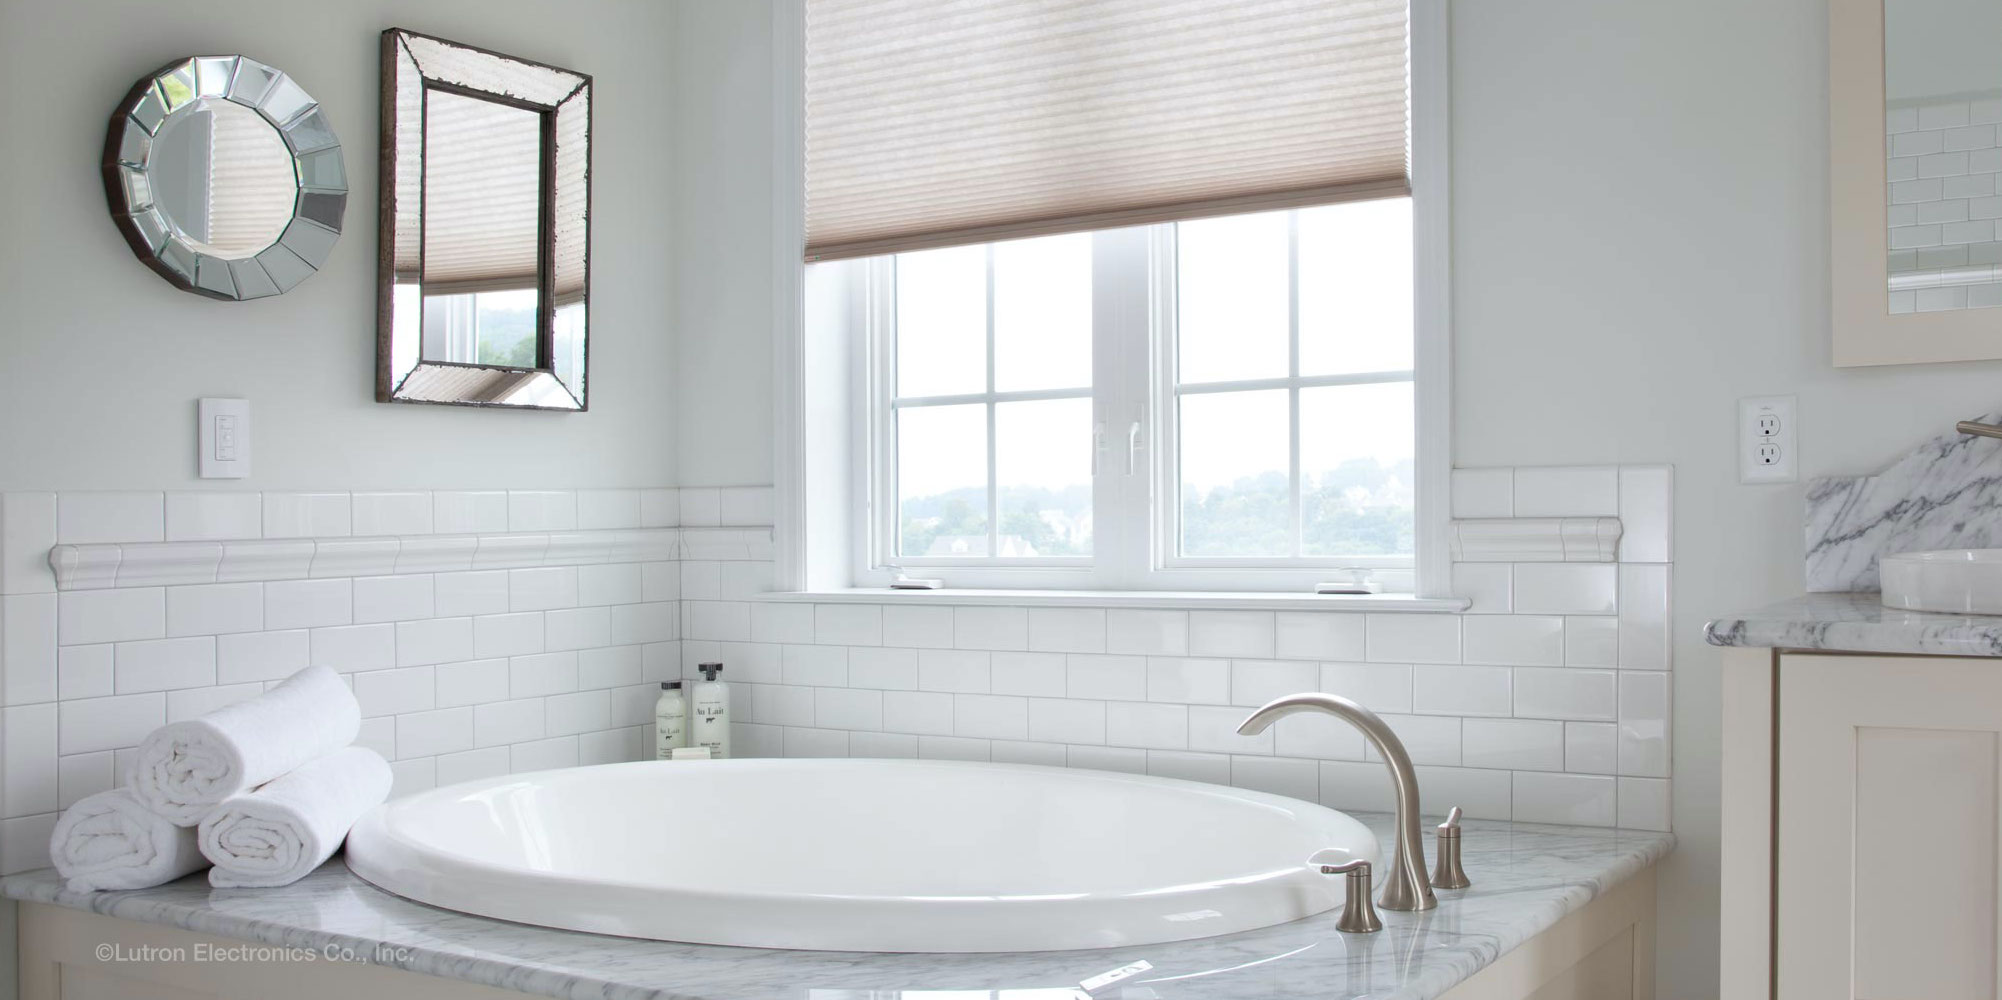 Should Motorized Roller Shades Be Your Next DIY Project?